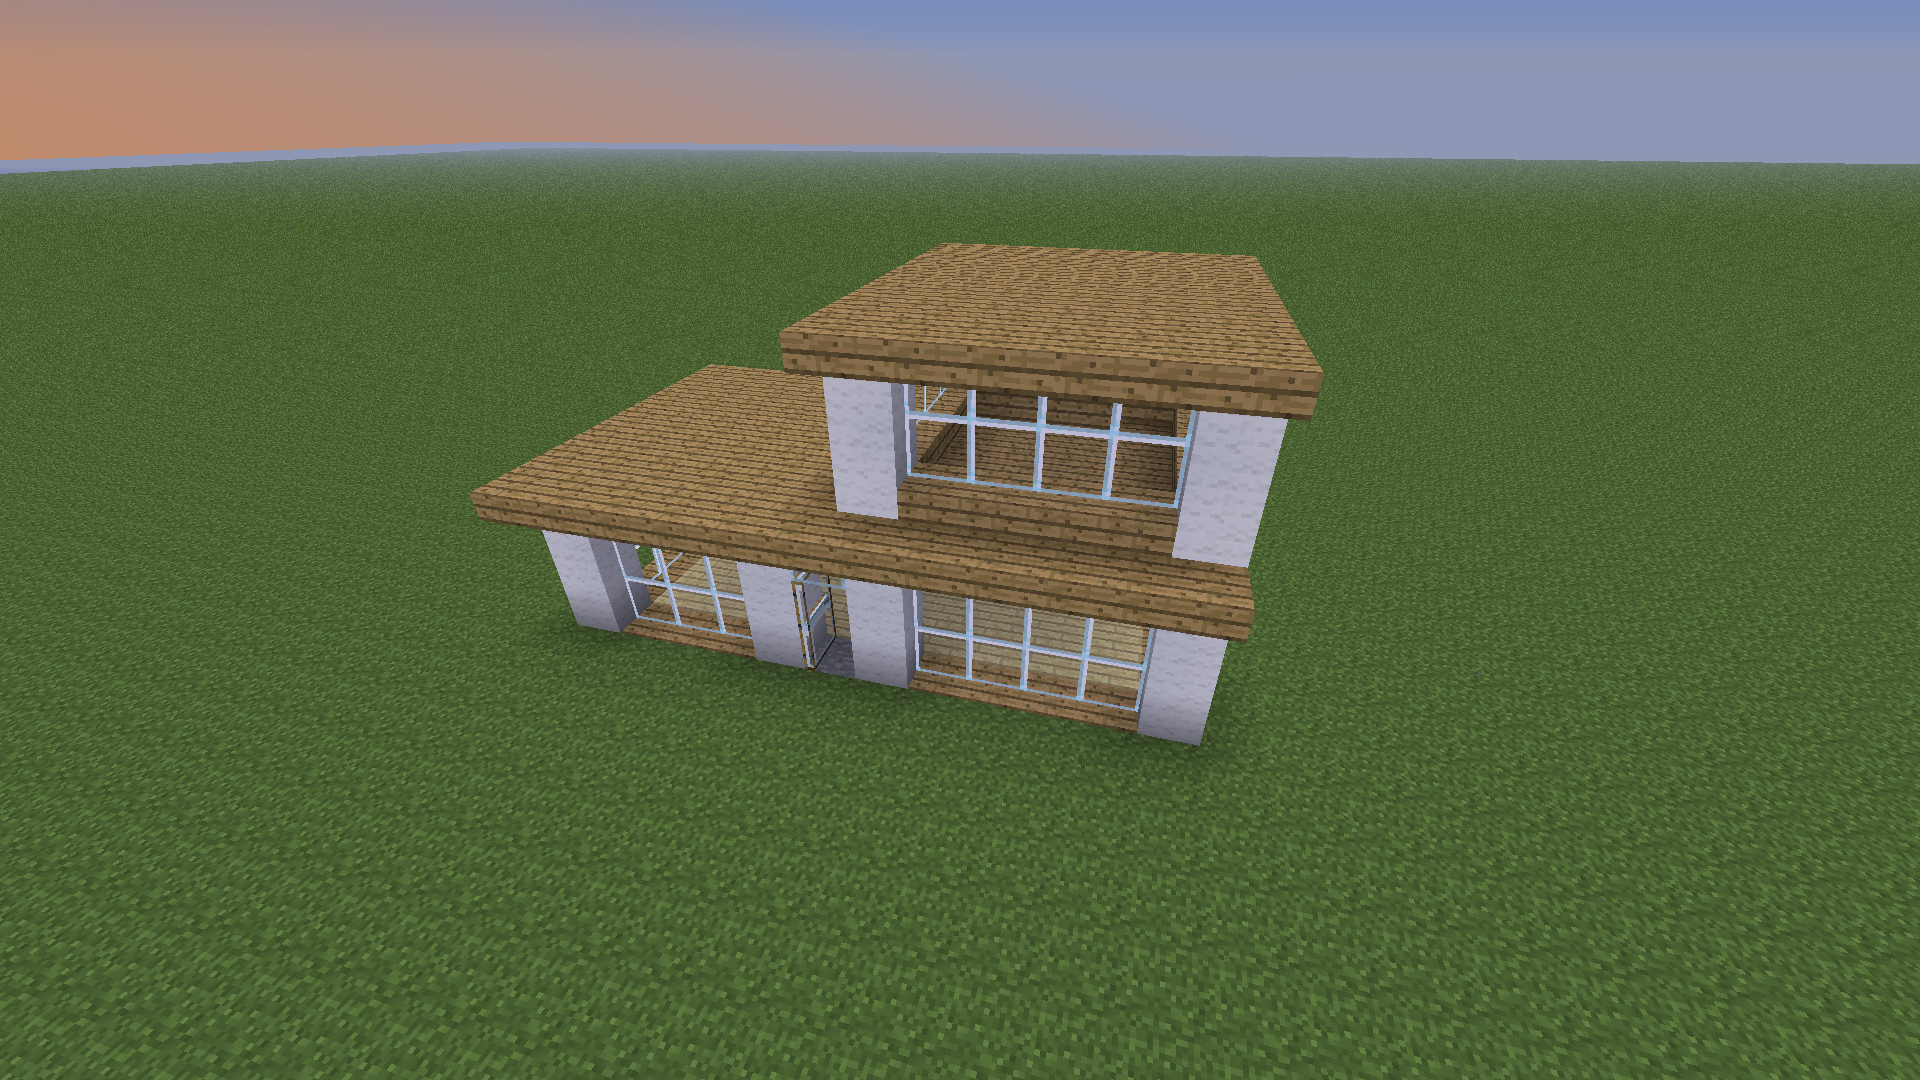 Basic Minecraft House With Blueprints Minecraft Instruction On How To Draw Put A Hous Minecraft Small House Minecraft House Designs Modern Minecraft Houses